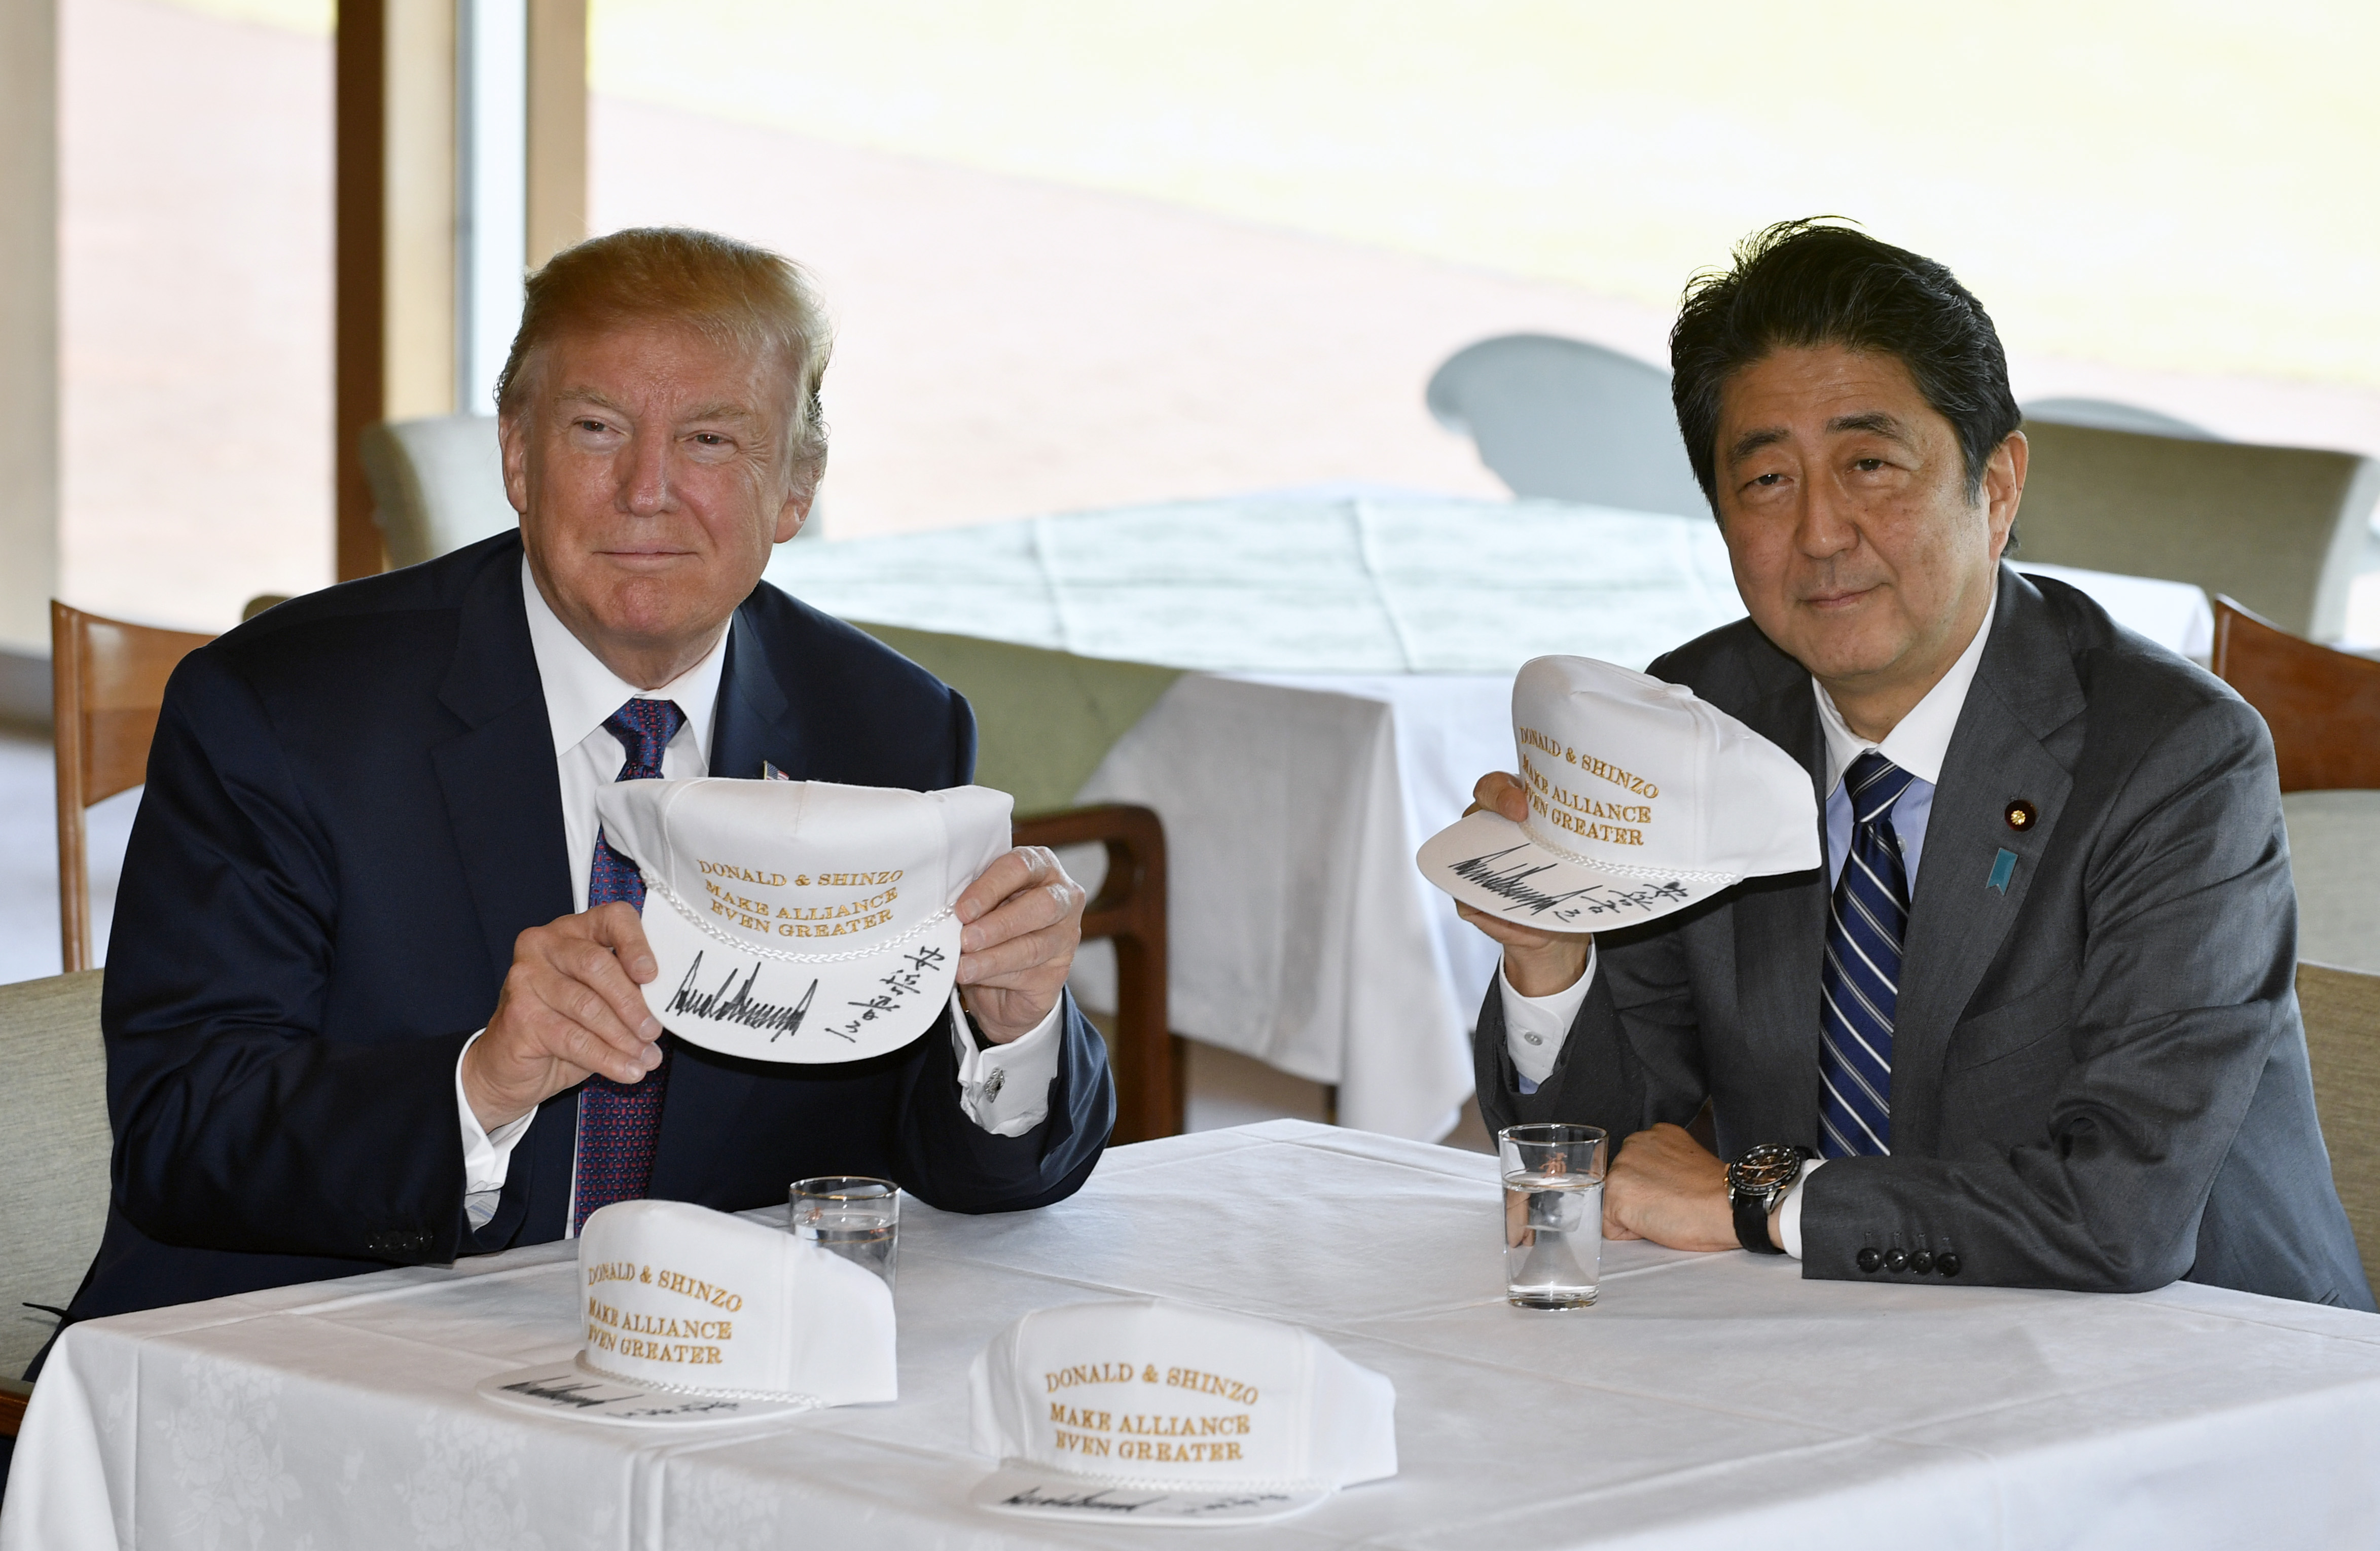 US President Donald Trump (L) and Japanese Prime Minister Shinzo Abe pose after they signed hats reading 'Donald and Shinzo, Make Alliance Even Greater' at the Kasumigaseki Country Club in Kawagoe, near Tokyo on November 5, 2017. Trump touched down in Japan, kicking off the first leg of a high-stakes Asia tour set to be dominated by soaring tensions with nuclear-armed North Korea. FRANCK ROBICHON/AFP/Getty Images